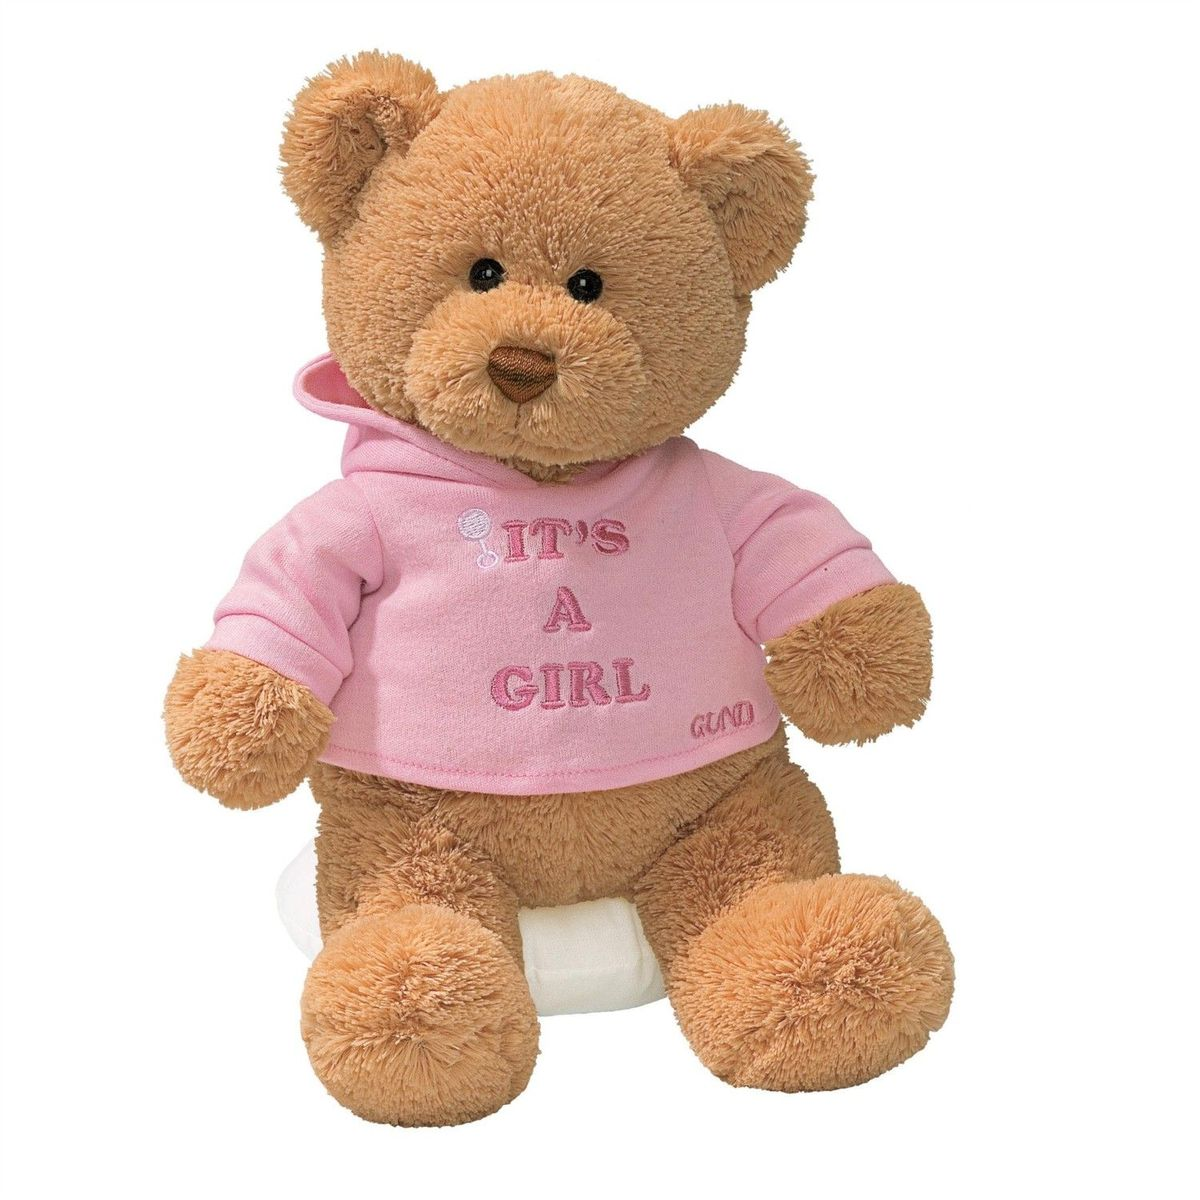 Gund Мягкая игрушка It's a girl 30 см gund игрушка мягкая farm свинка со звуком